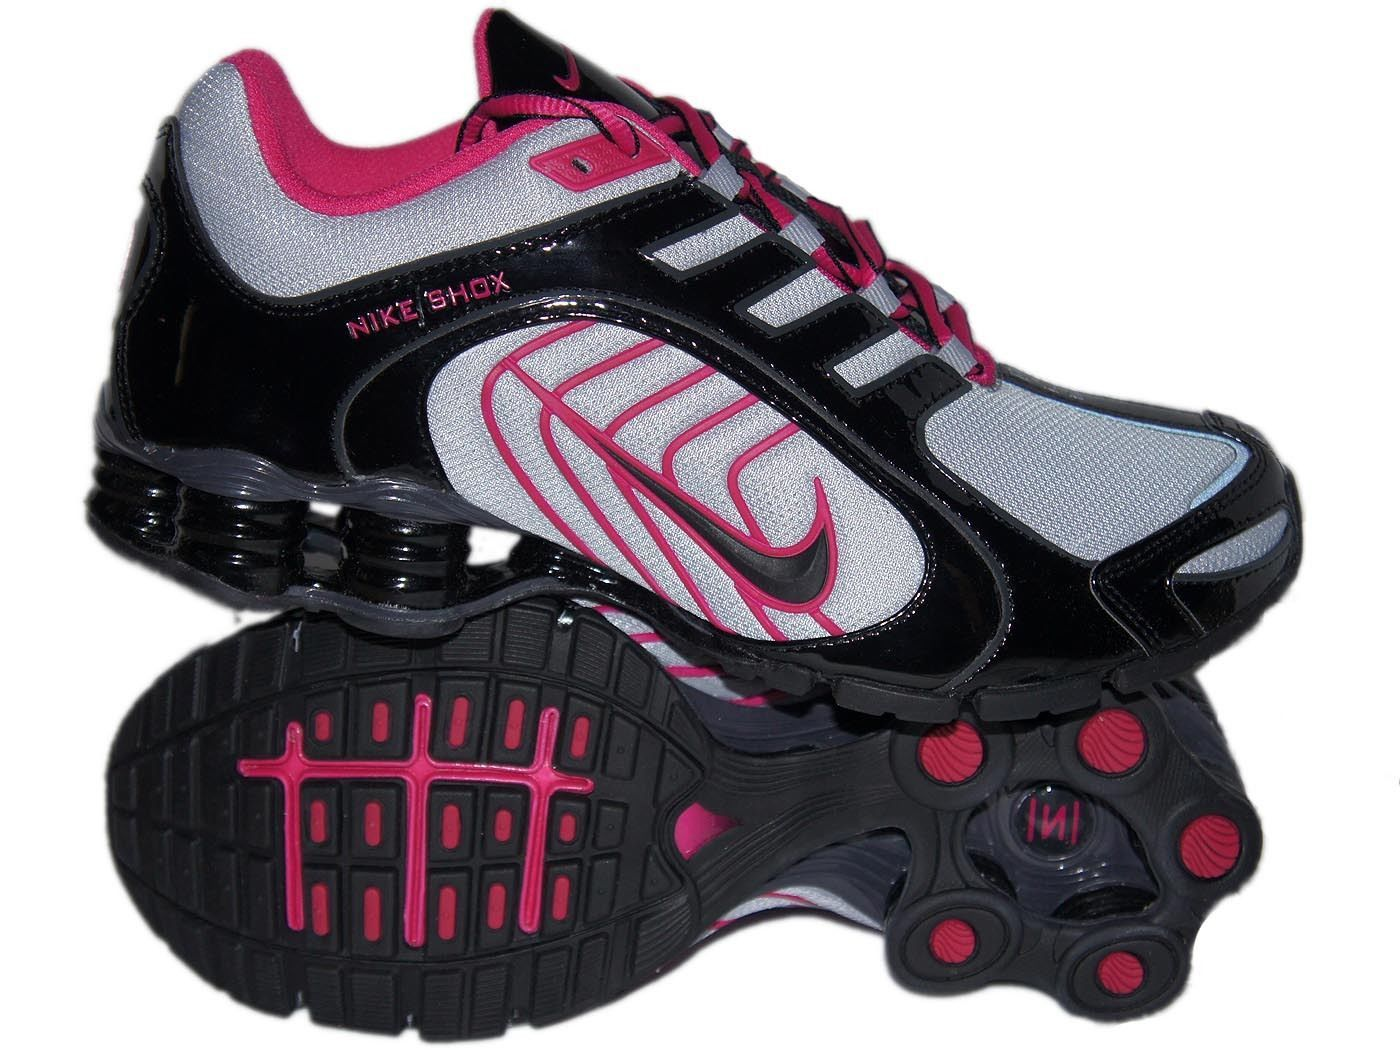 various colors 72228 2e9a9 WOMEN S NIKE SHOX NAVINA SIZE 7.5 - GREY BLACK FIREBERRY RUNNING